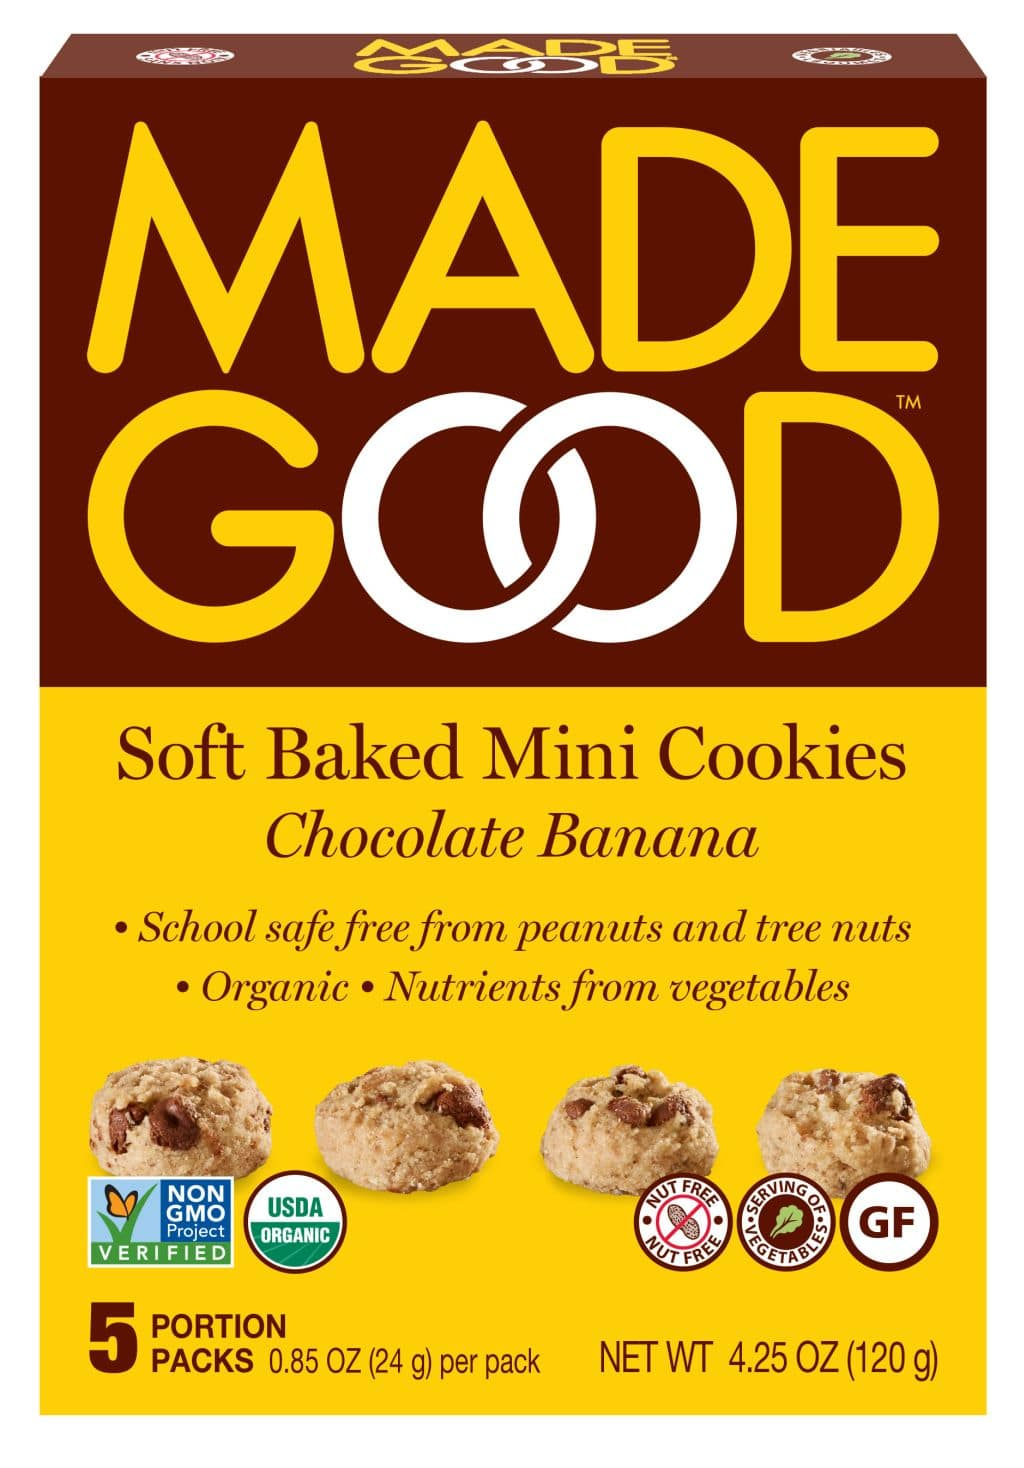 MGUS SoftBakedCookie Chocolate Banana 714x1024 - Natural Products Expo West 2018: Exhibitors to put on your visit list